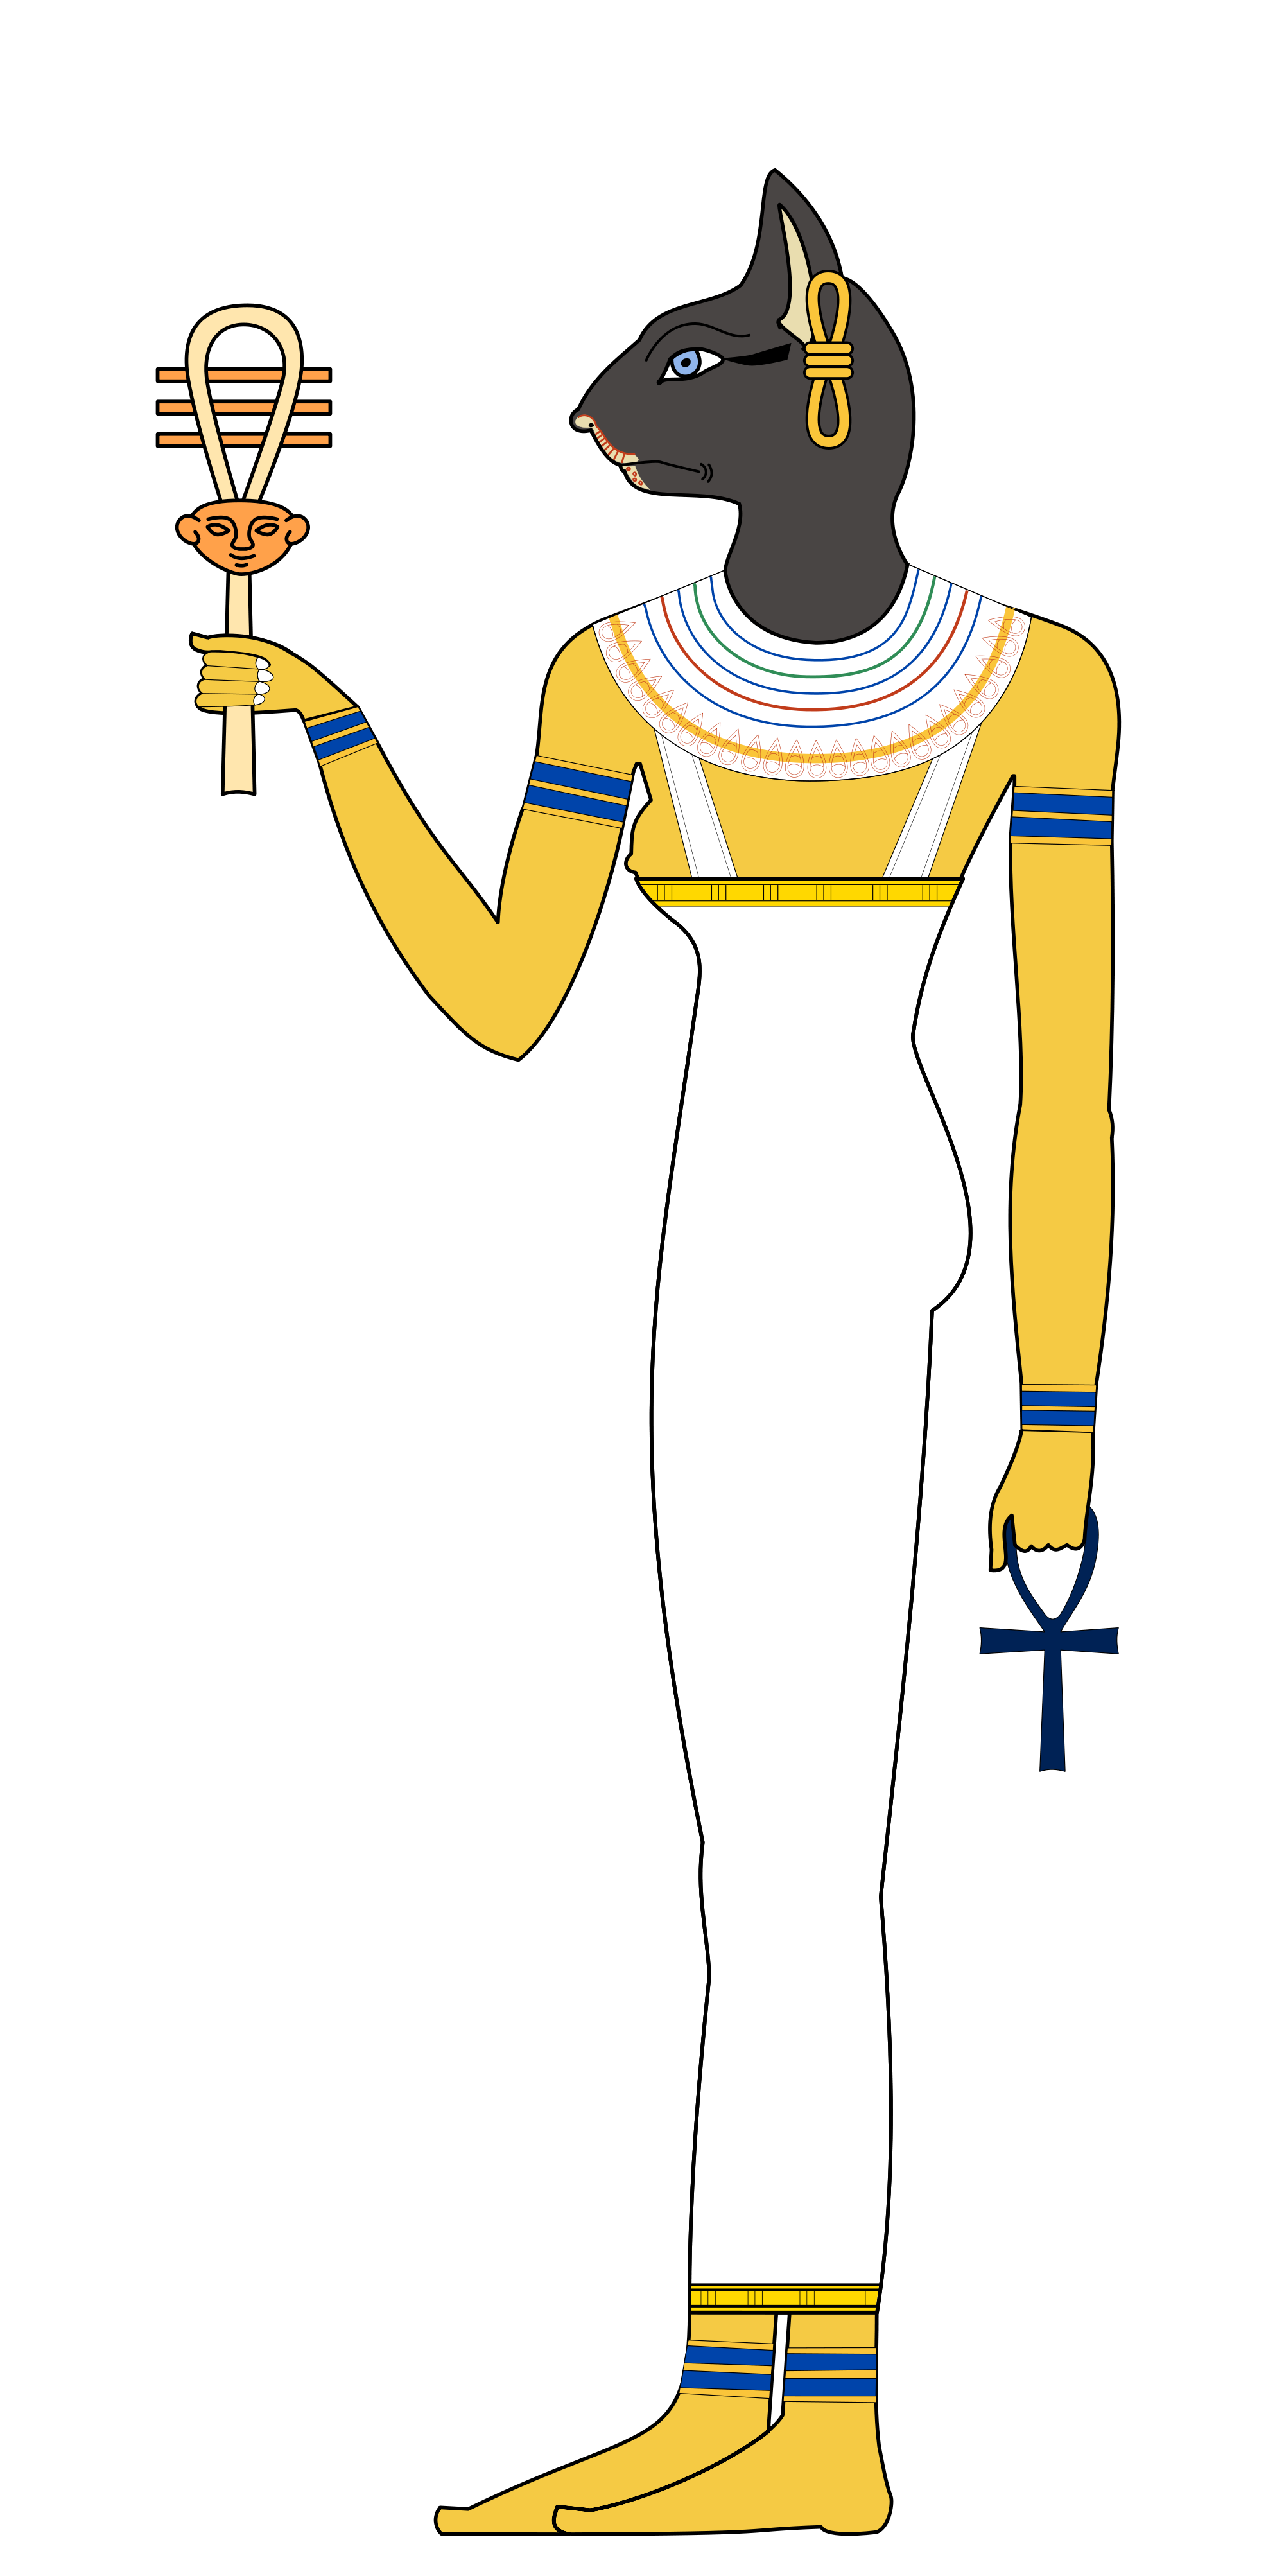 Ra (Deity) svg #14, Download drawings